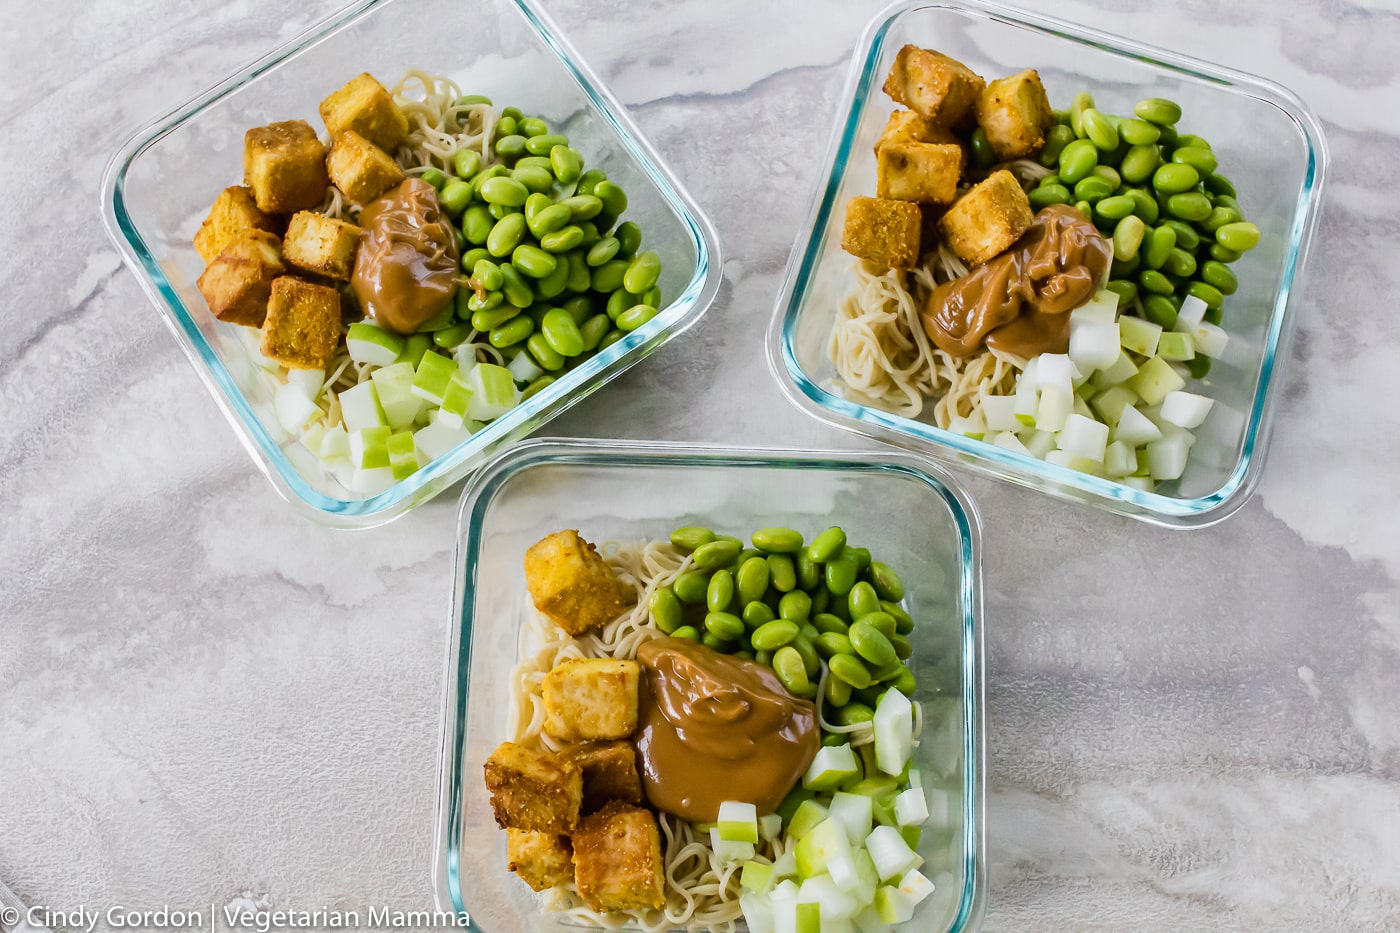 Tofu Noodle Bowl Recipe divided into three bowls